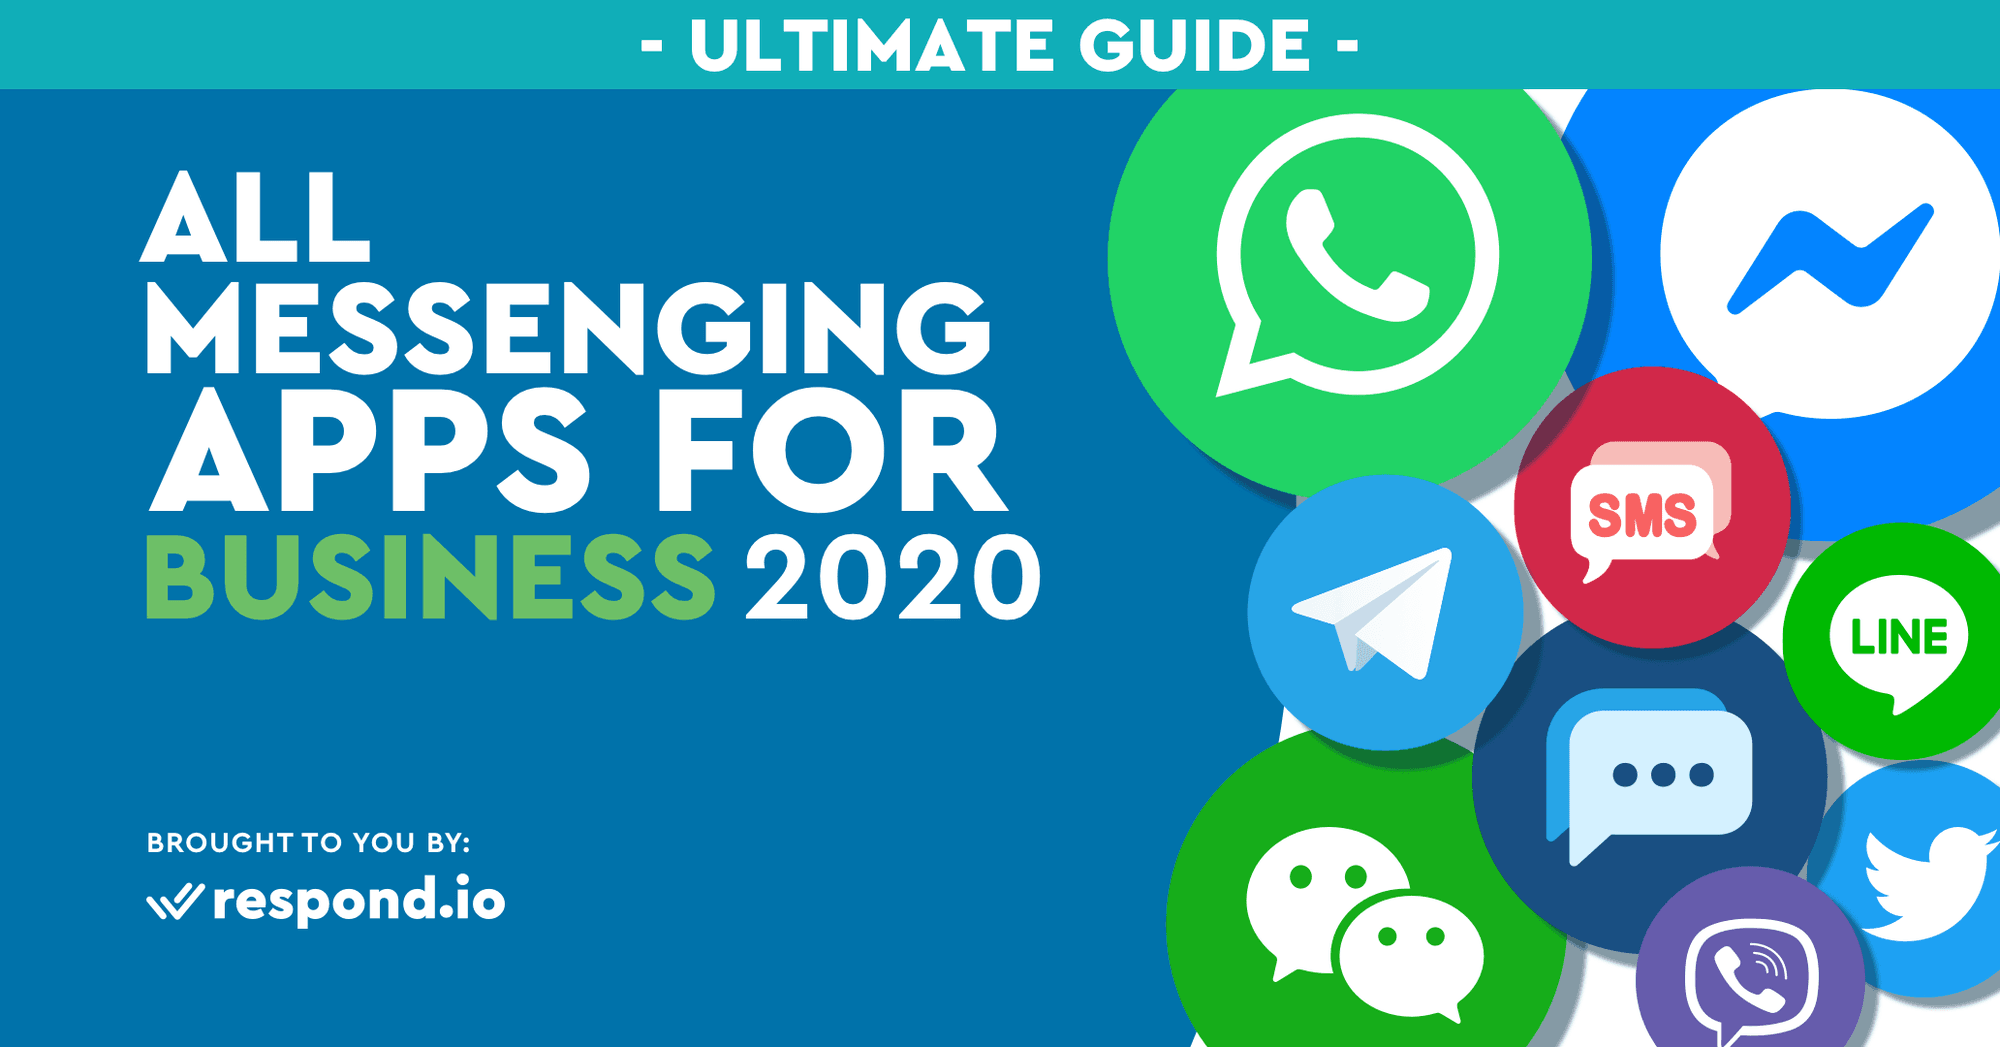 Ultimate Guide to Instant Messaging for Business 2020